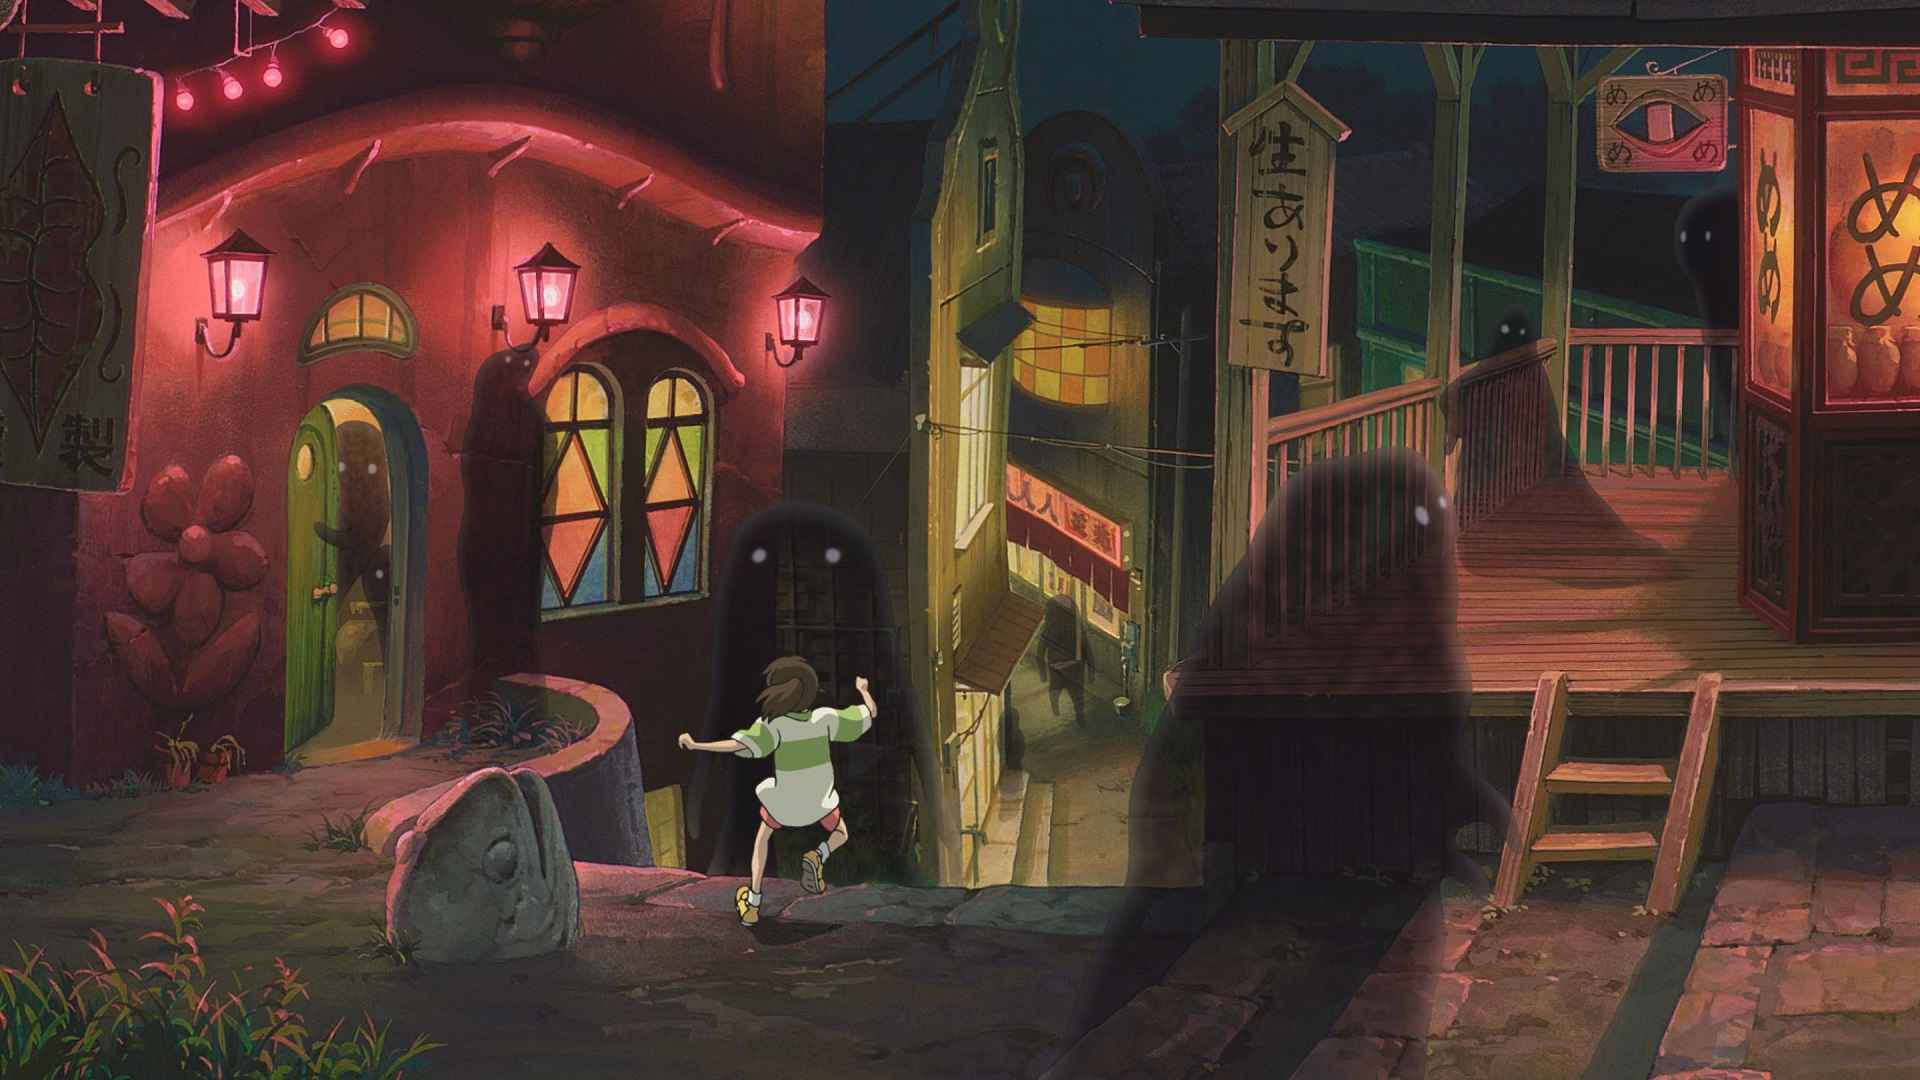 Ghibli's cartoon in the article 5 cool animated films